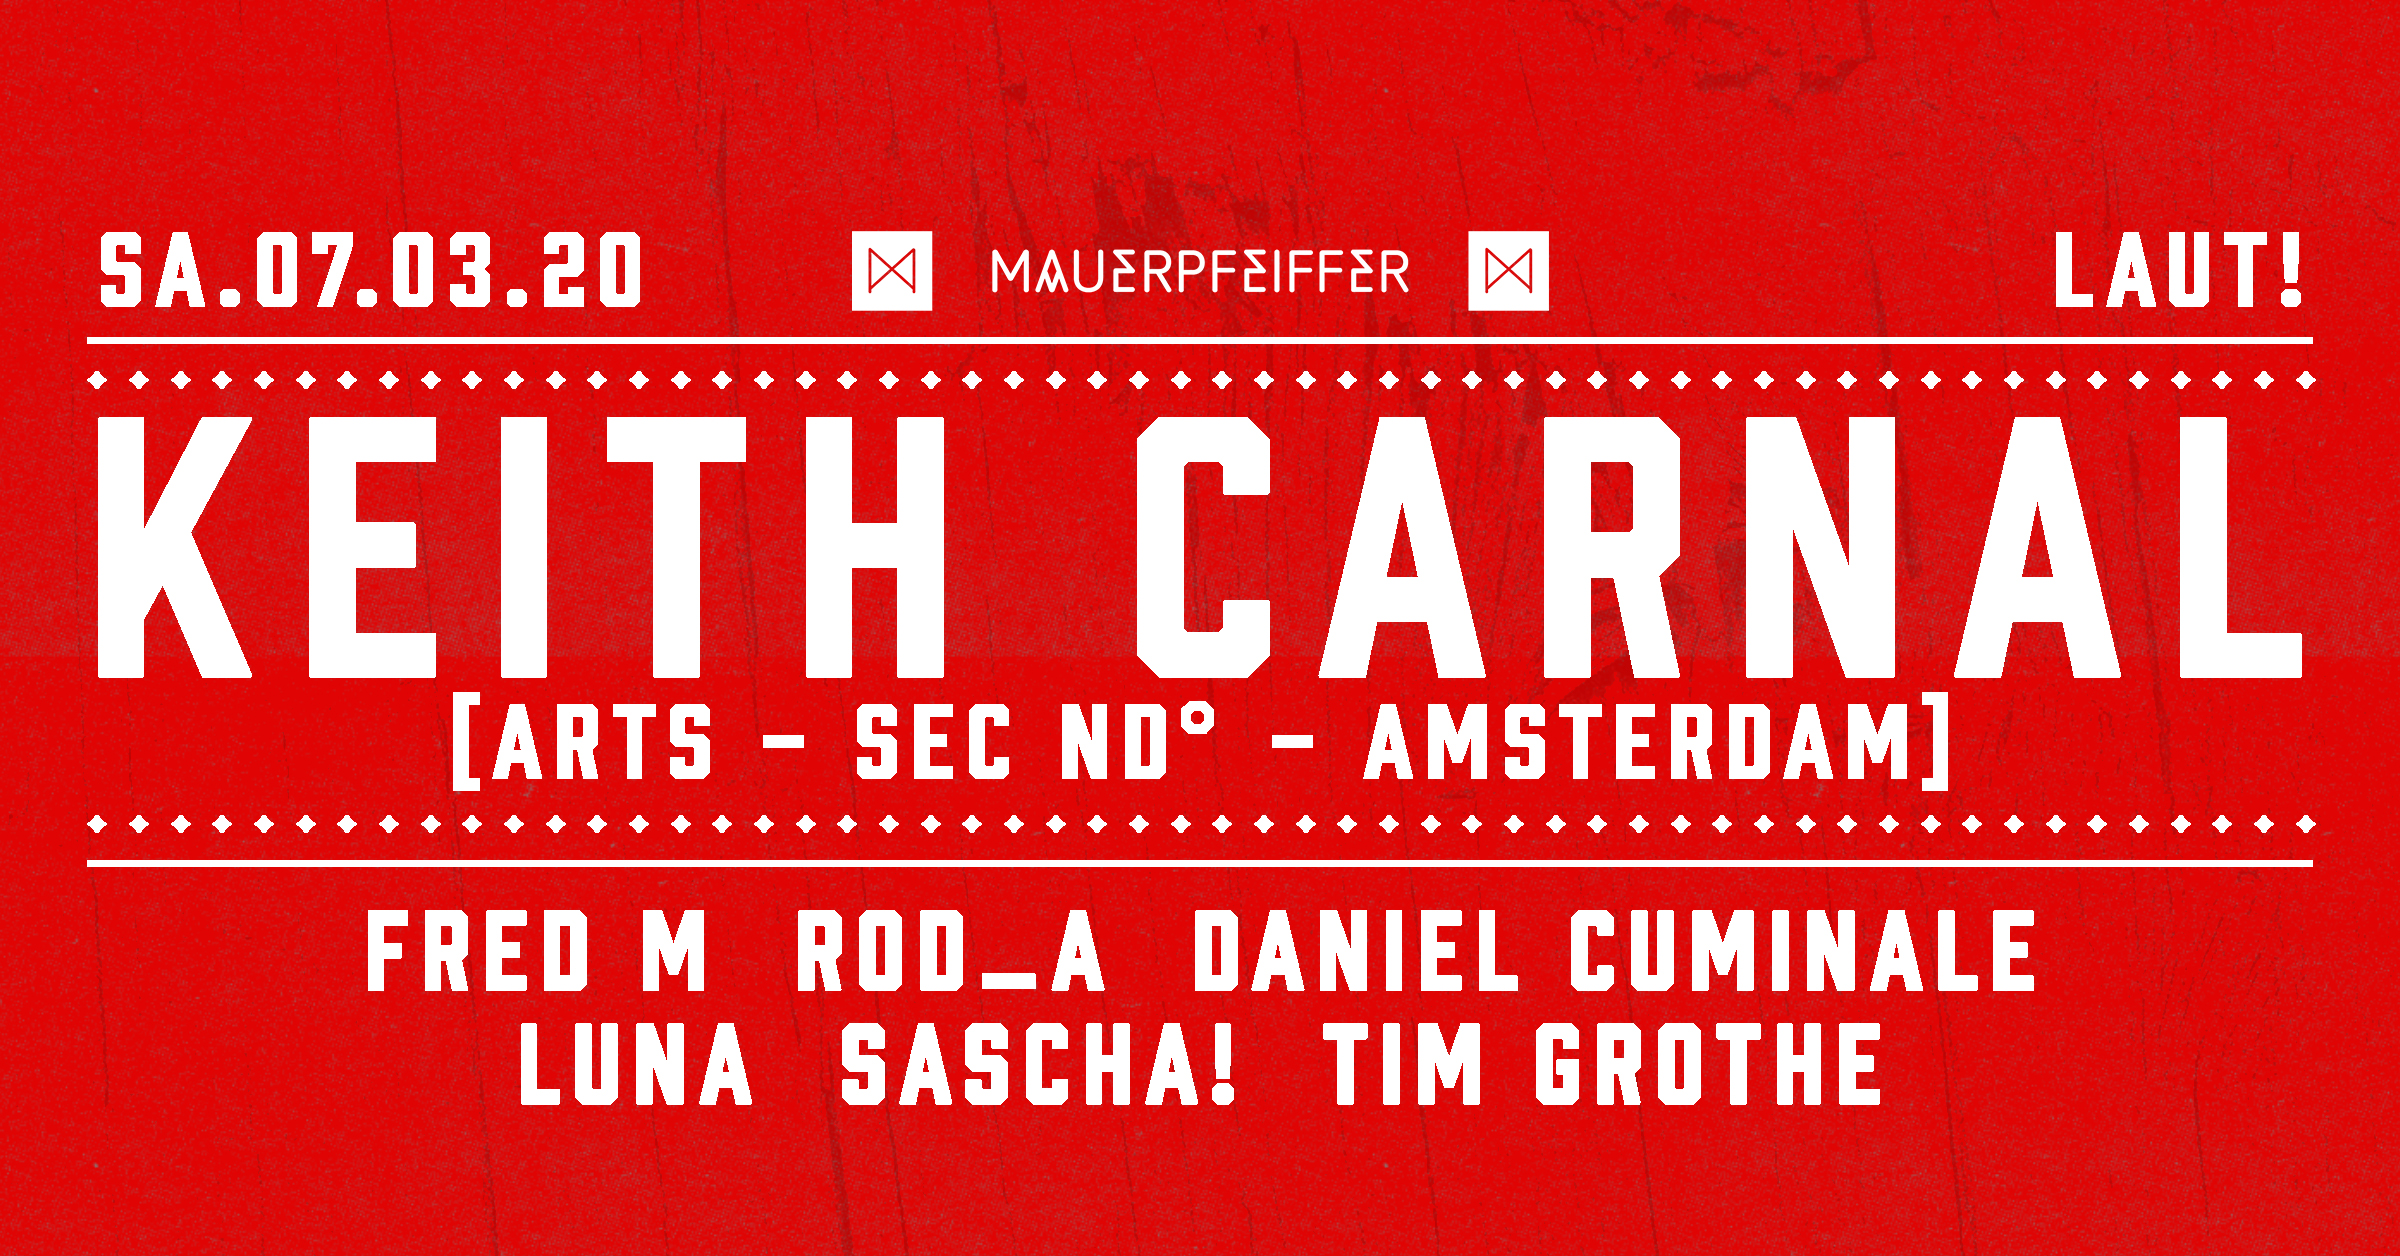 Laut! /w Keith Carnal (ARTS - SEC ND° - Amsterdam)